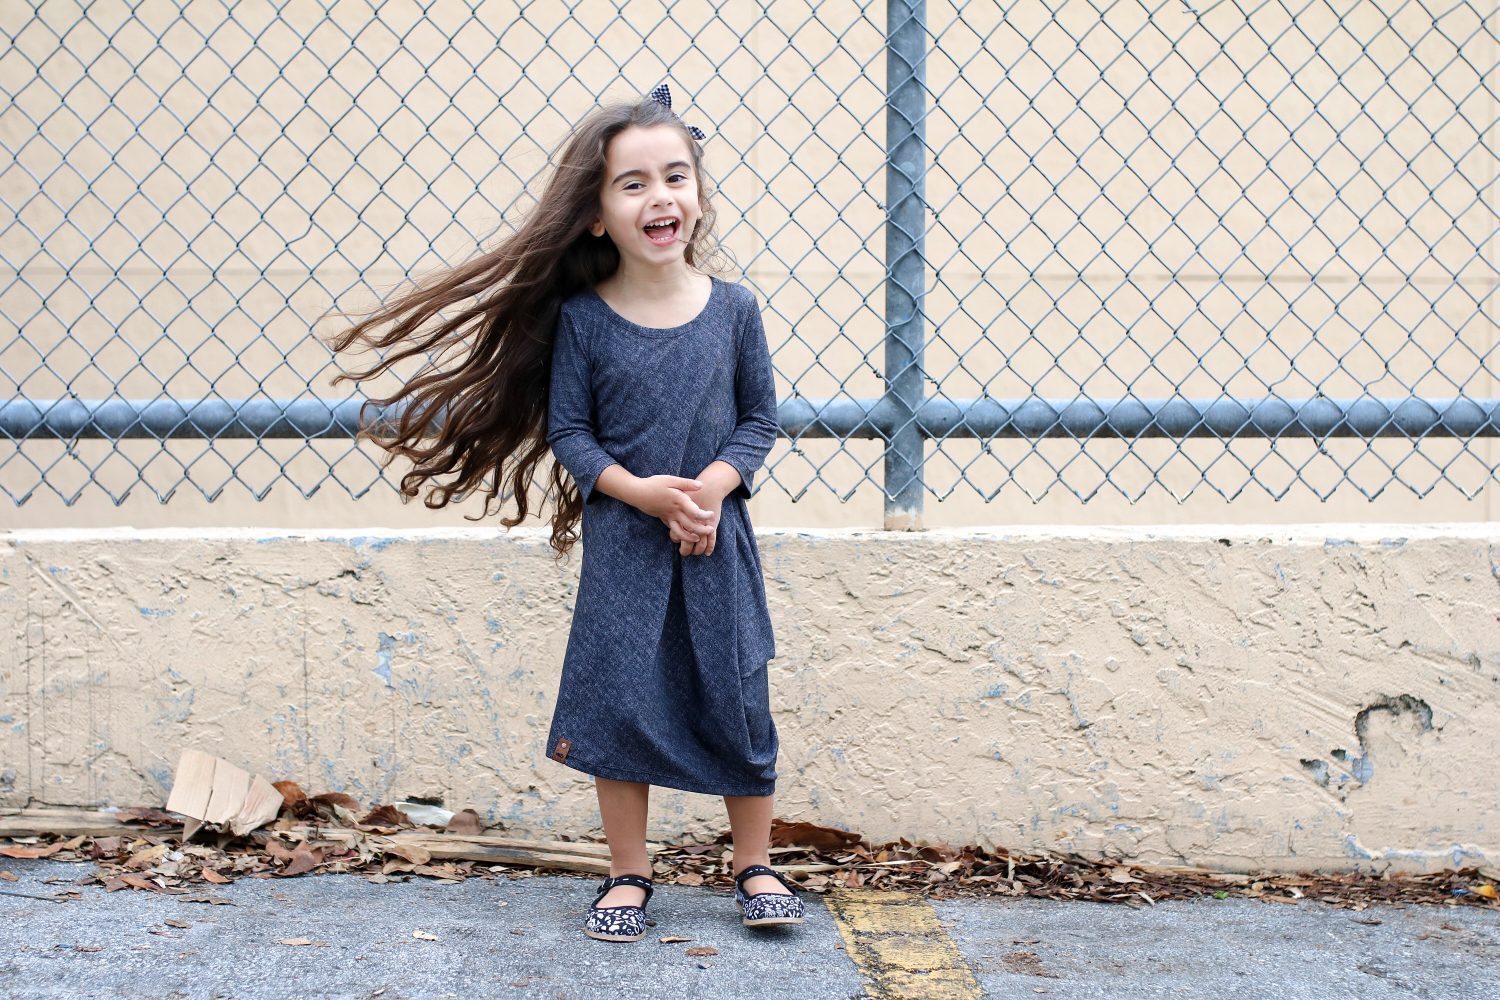 Capture the Perfect Smile The Small Fashionista for Mini Street Kidswear